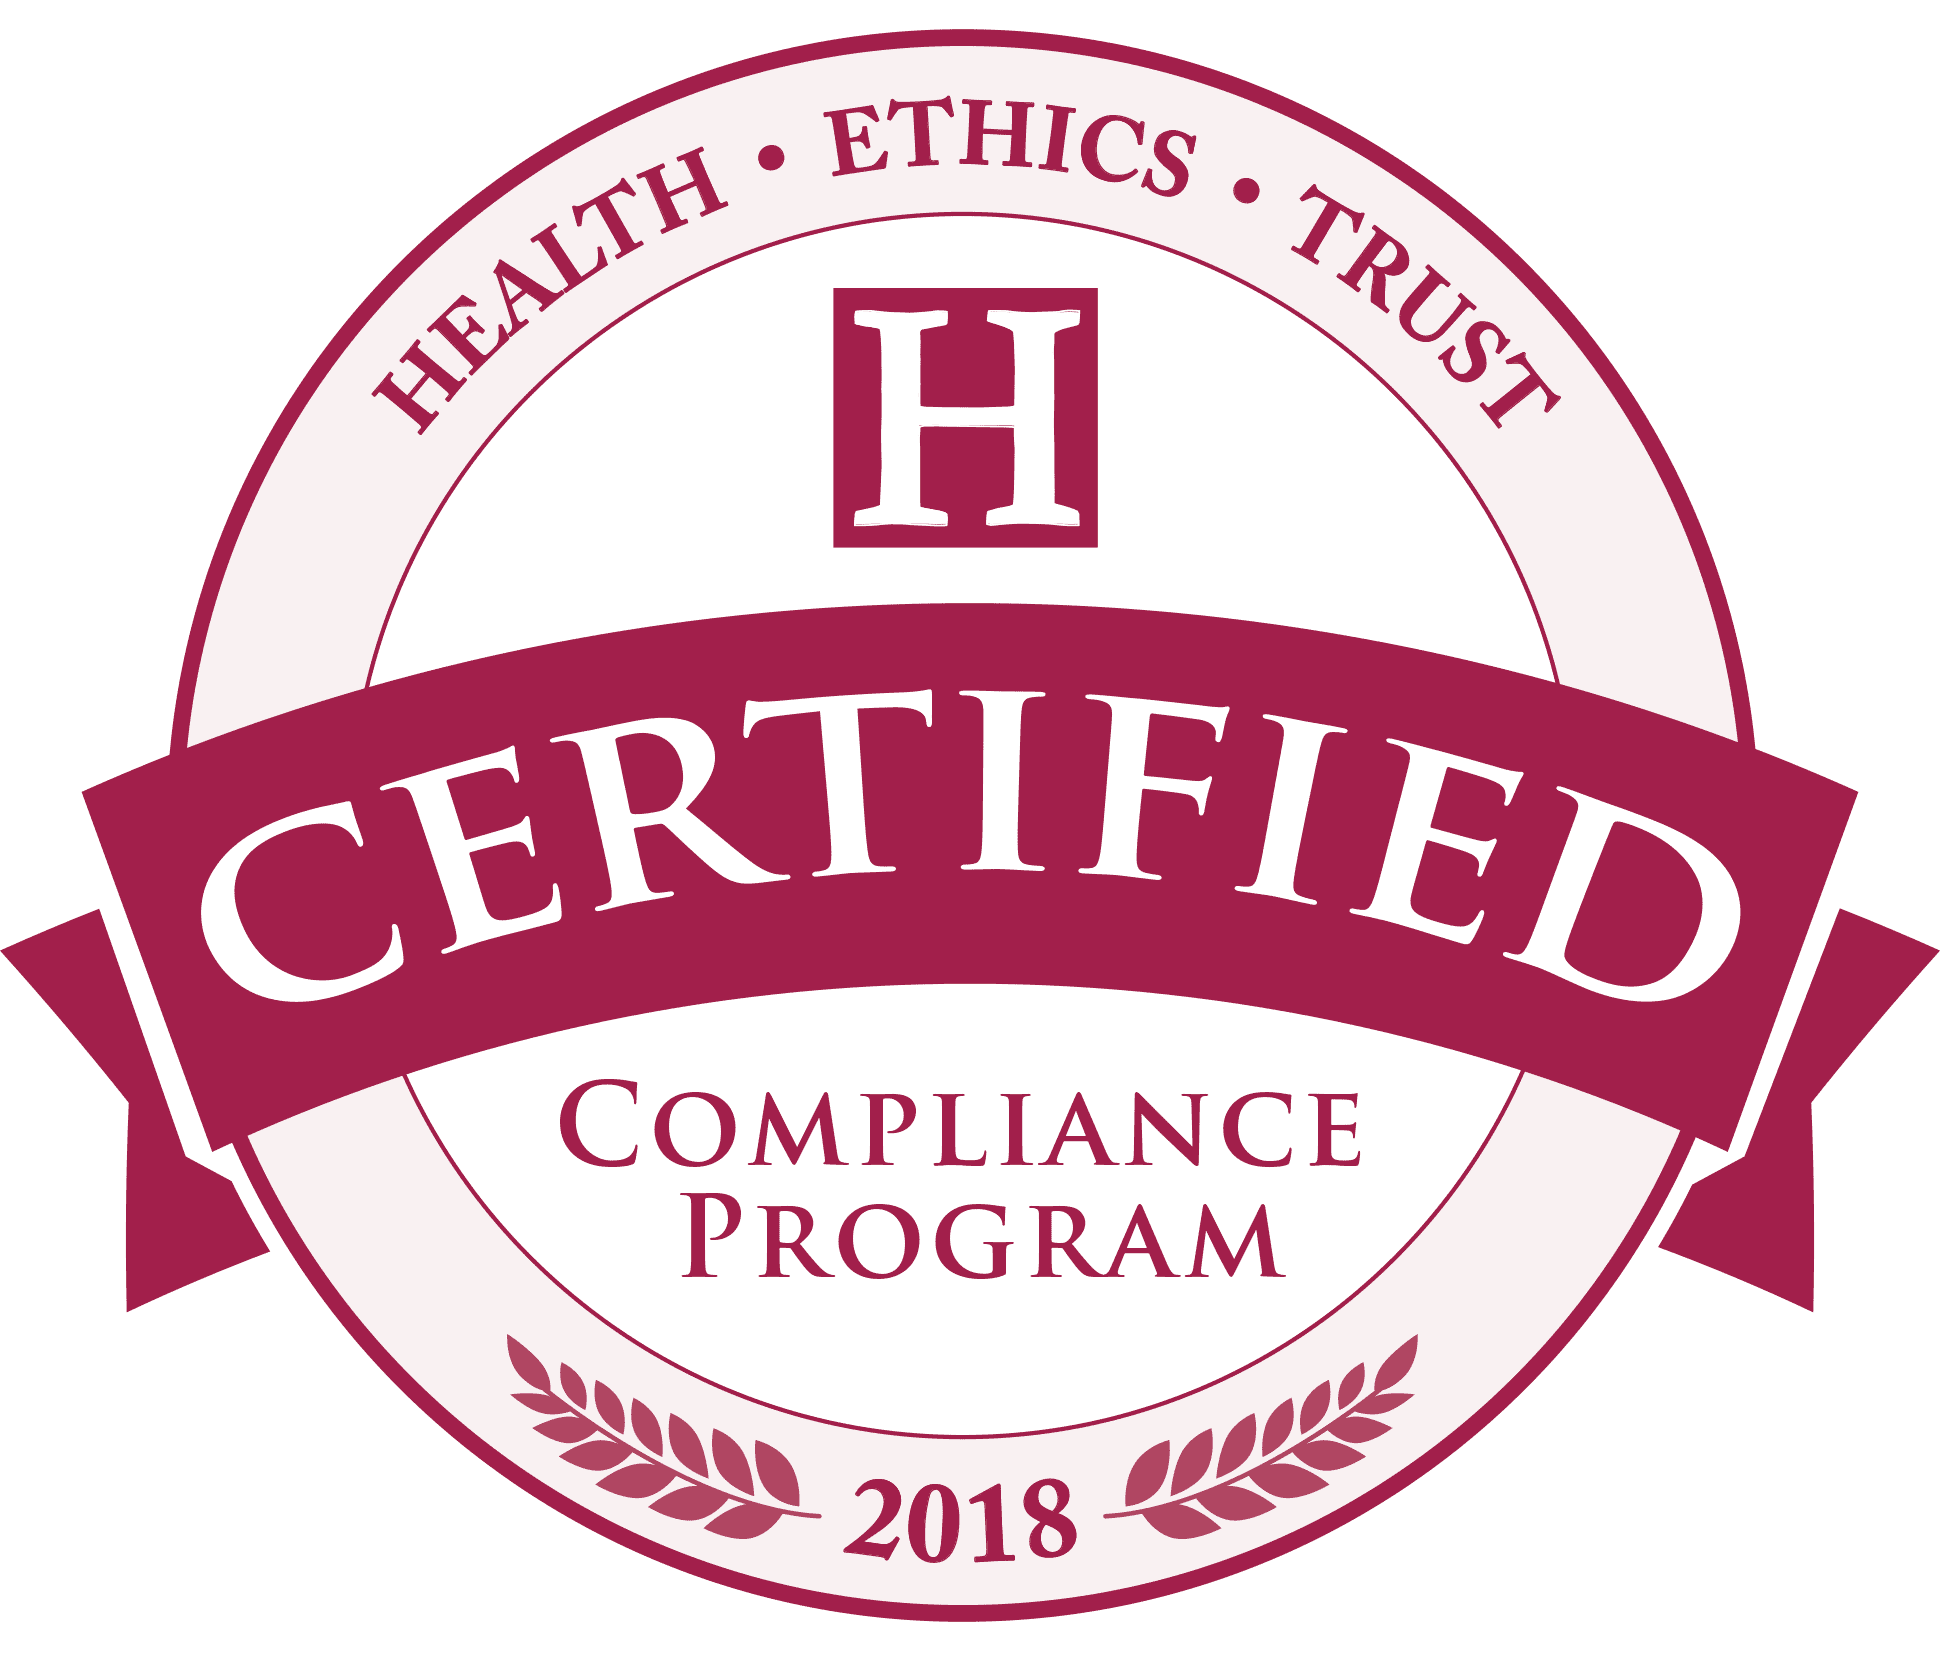 Healthcare Compliance Program Certification Health Ethics Trust